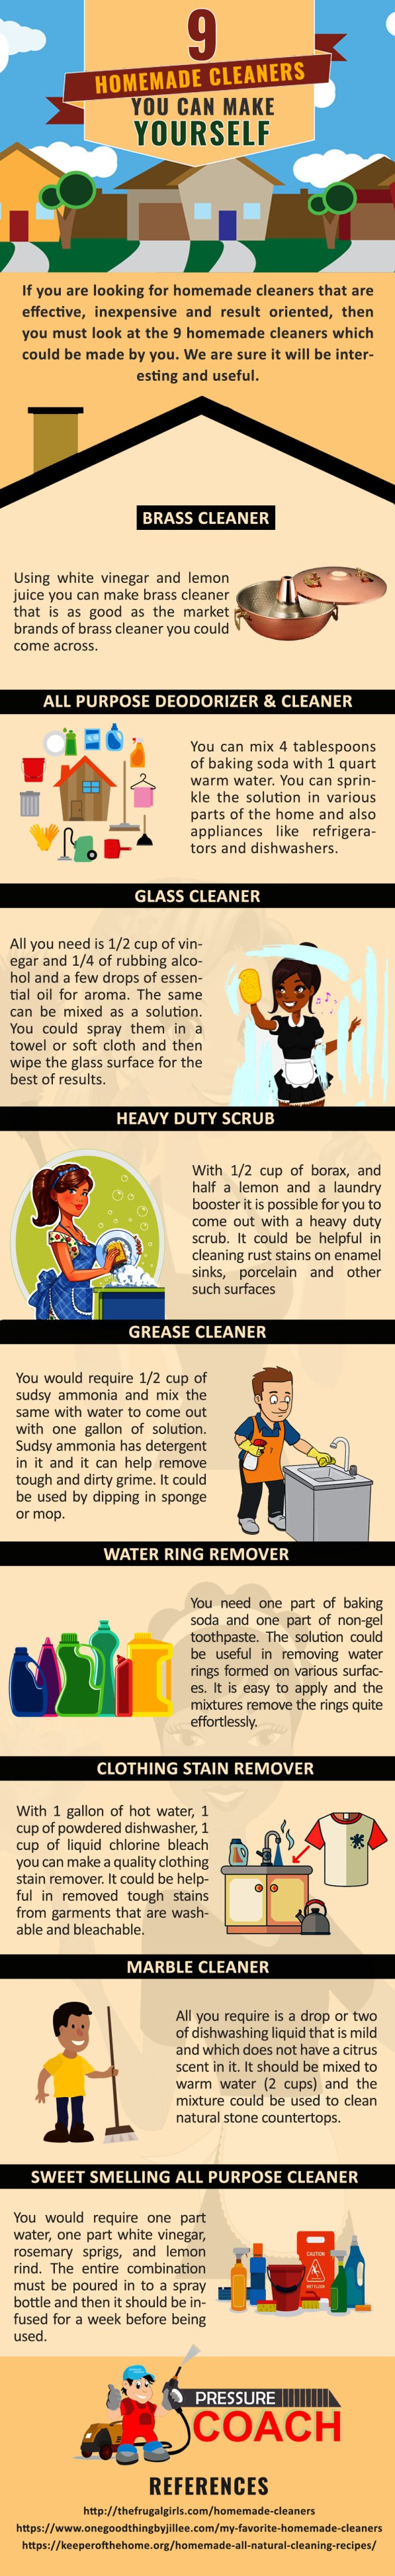 9-Homemade-Cleaners-You-Can-Make-Yourself-Infographic.png.jpeg